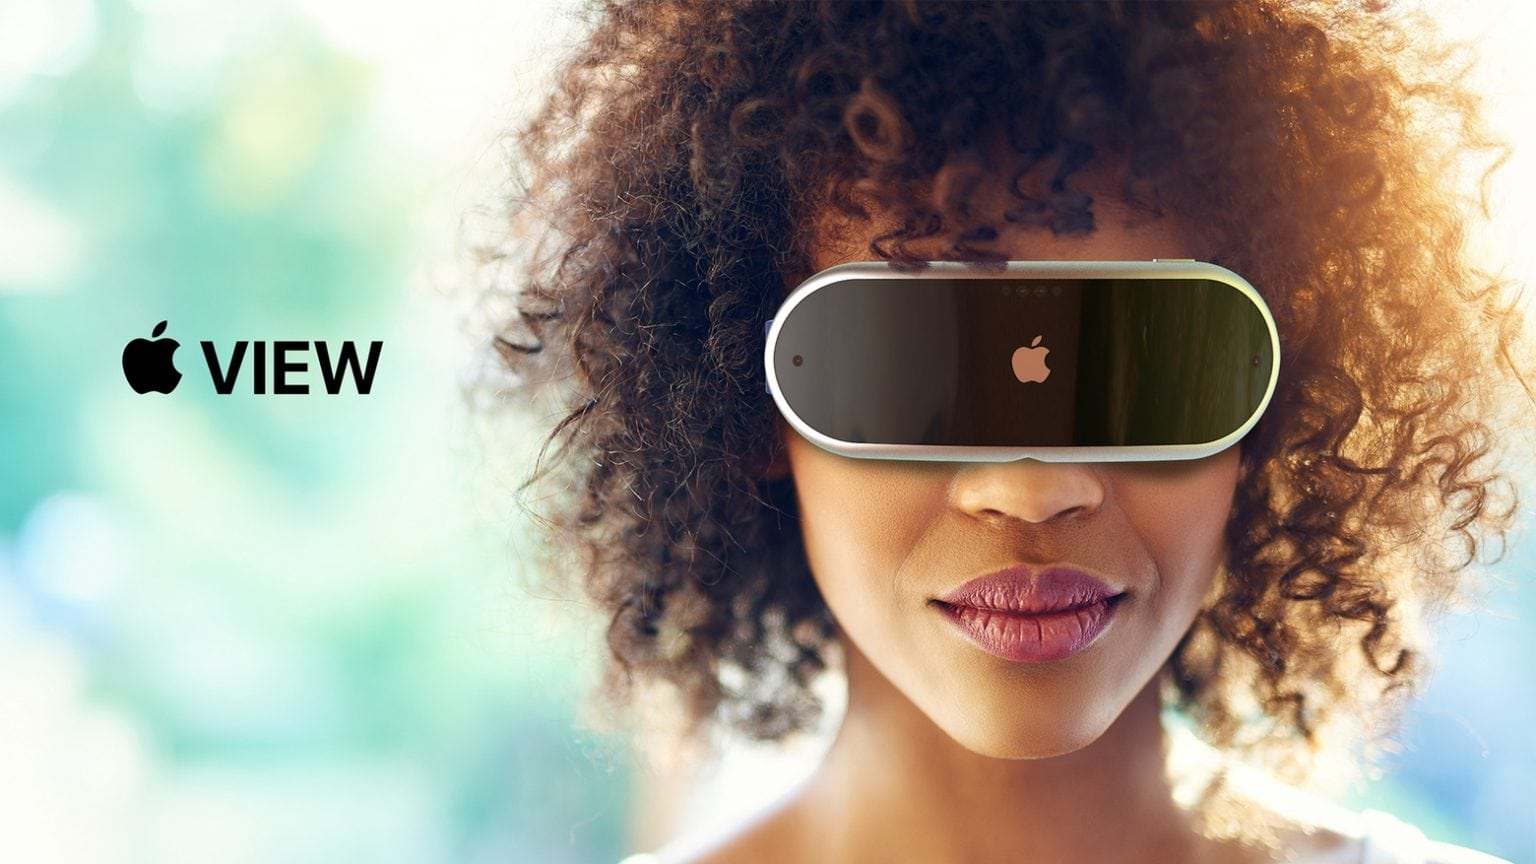 This Apple VR headset concept